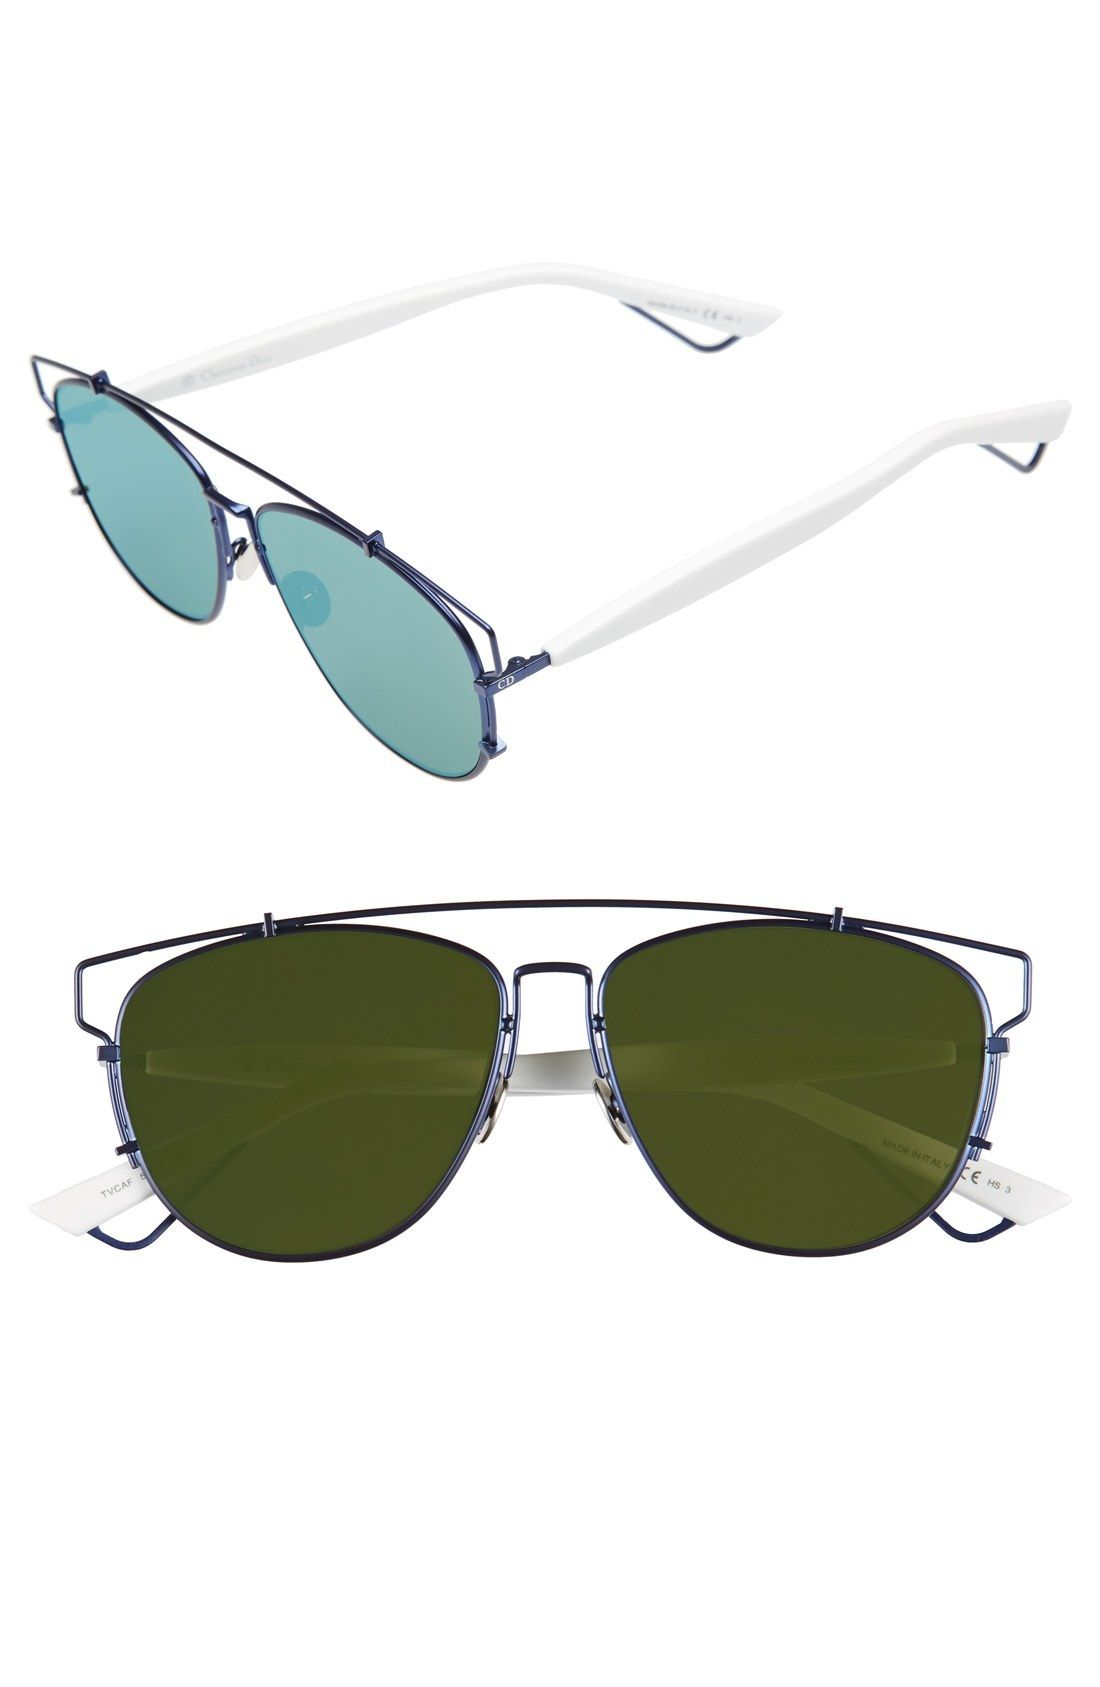 Dior  Technos  57mm Sunglasses available at  Nordstrom   Sunglasses ... 761b8aeefd88